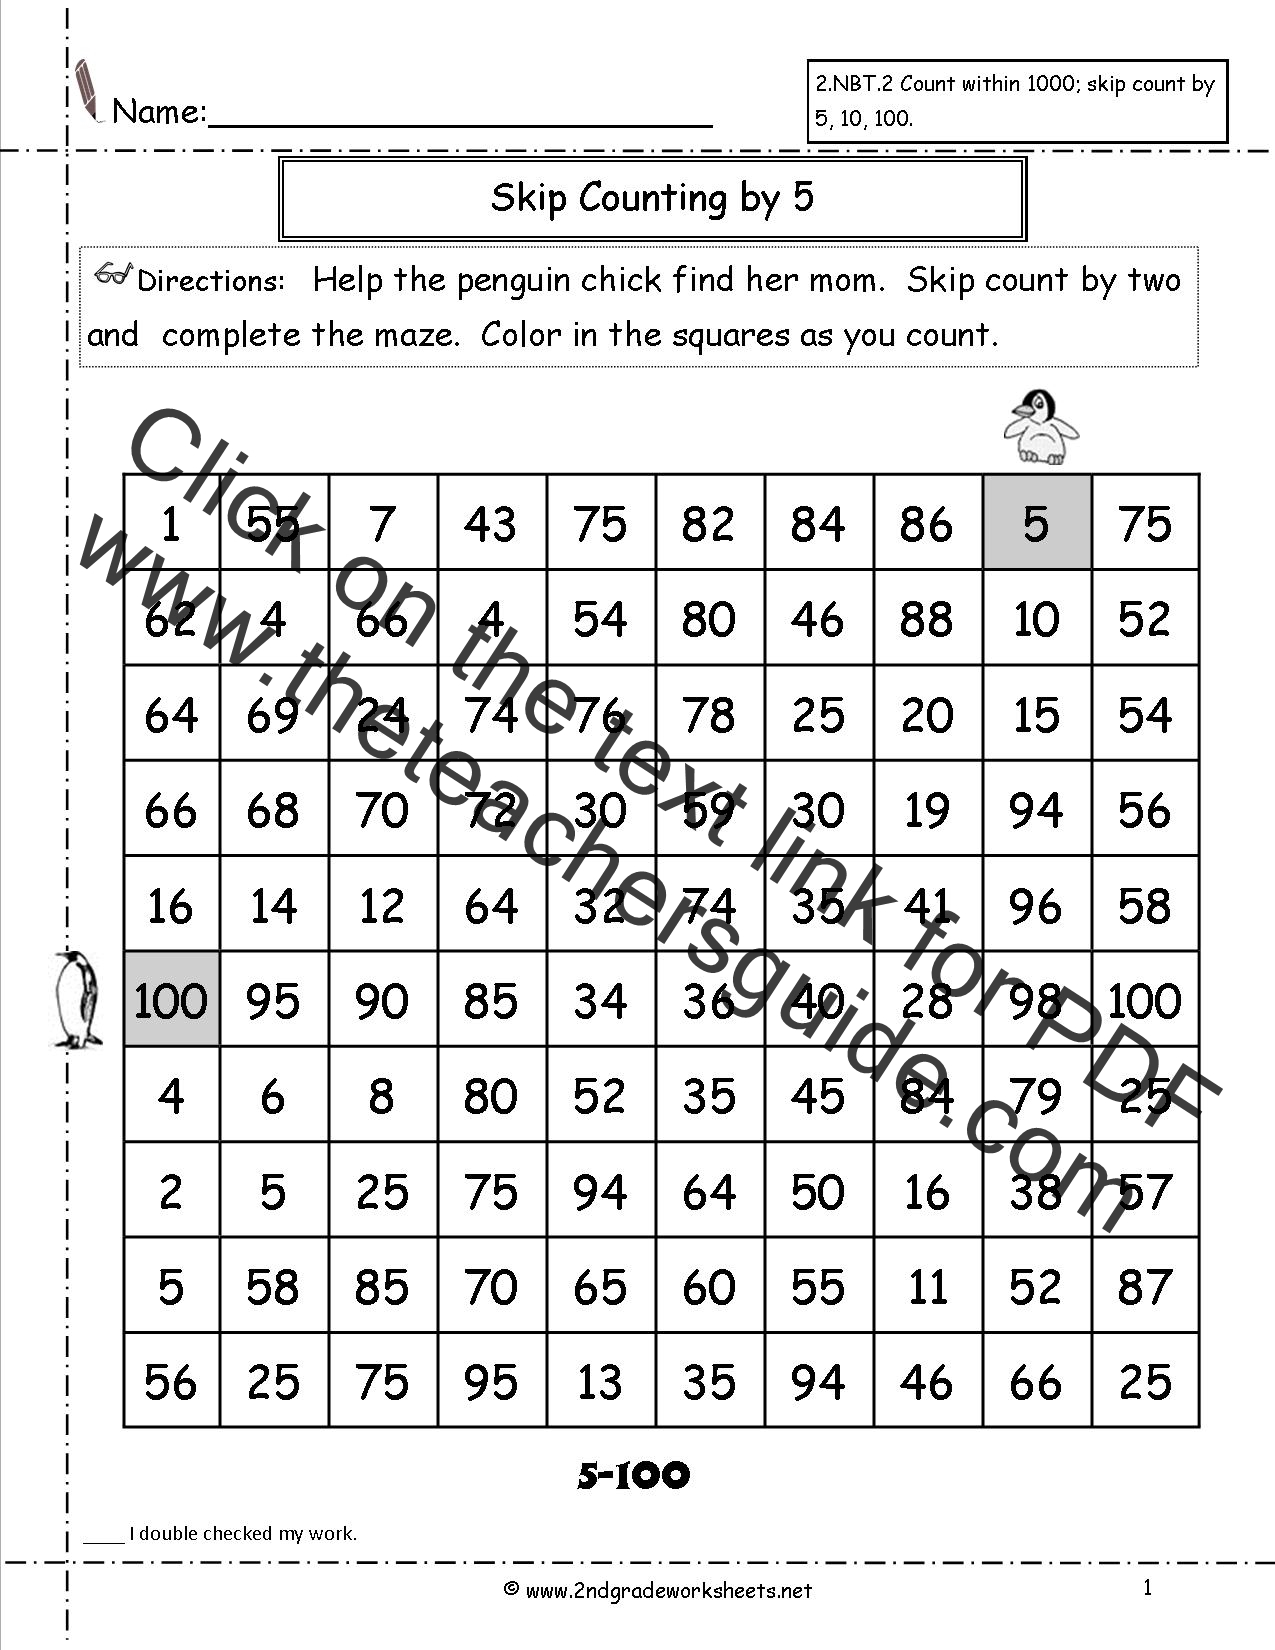 Free Skip Counting Worksheets – Count to 100 Worksheet